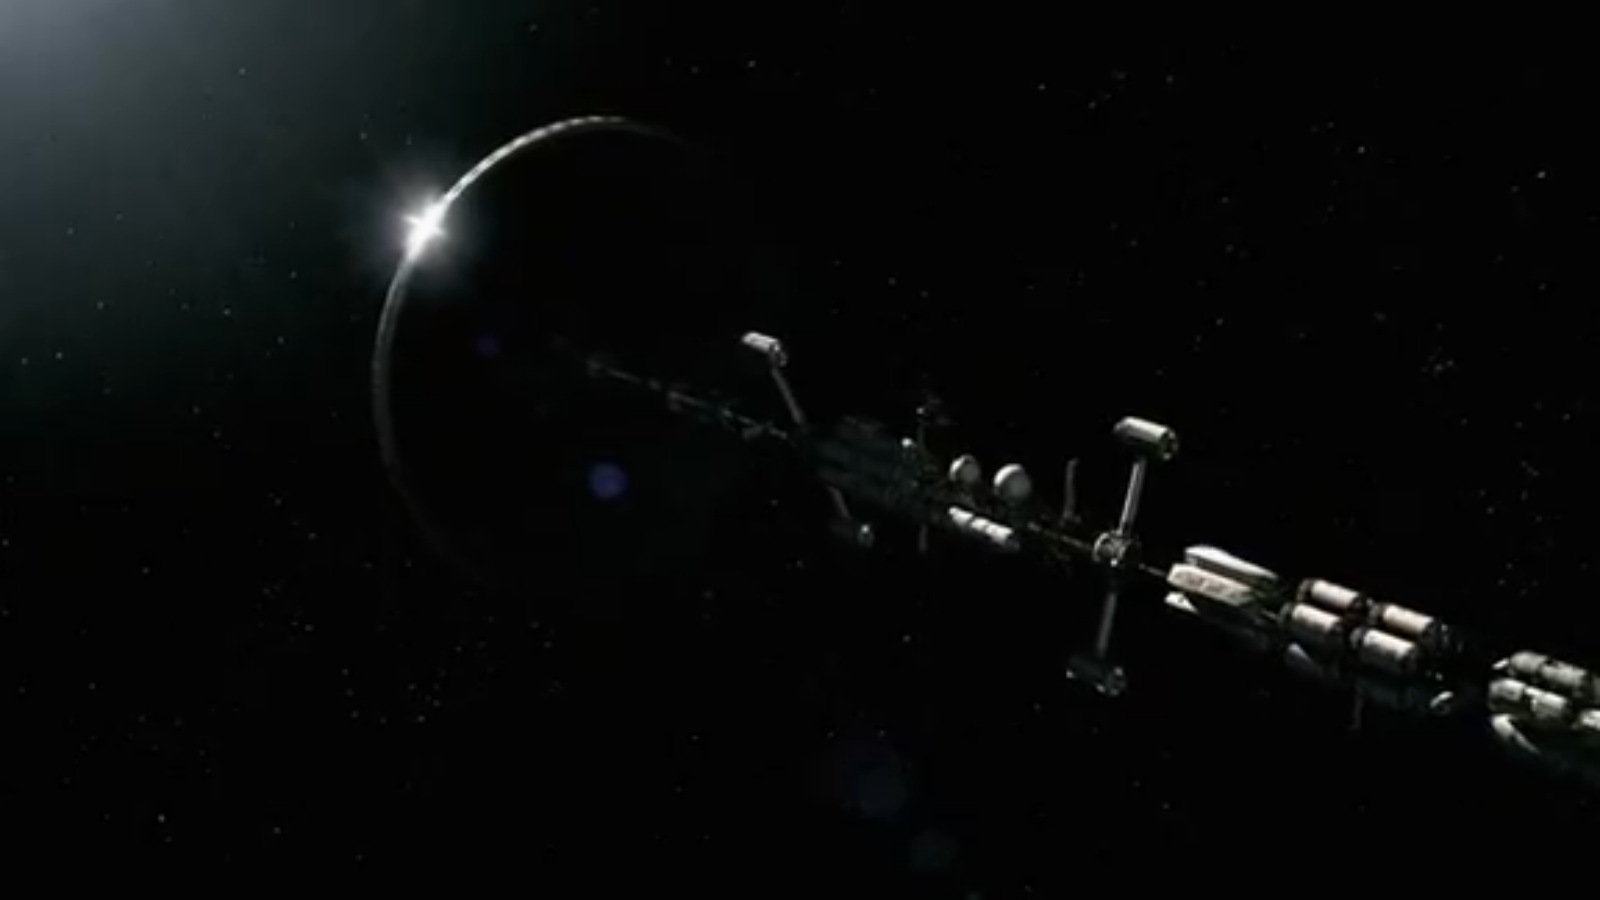 A subjectively obscure scifi primer defying gravity the antares because the ship is more interesting than any character on the show ccuart Gallery